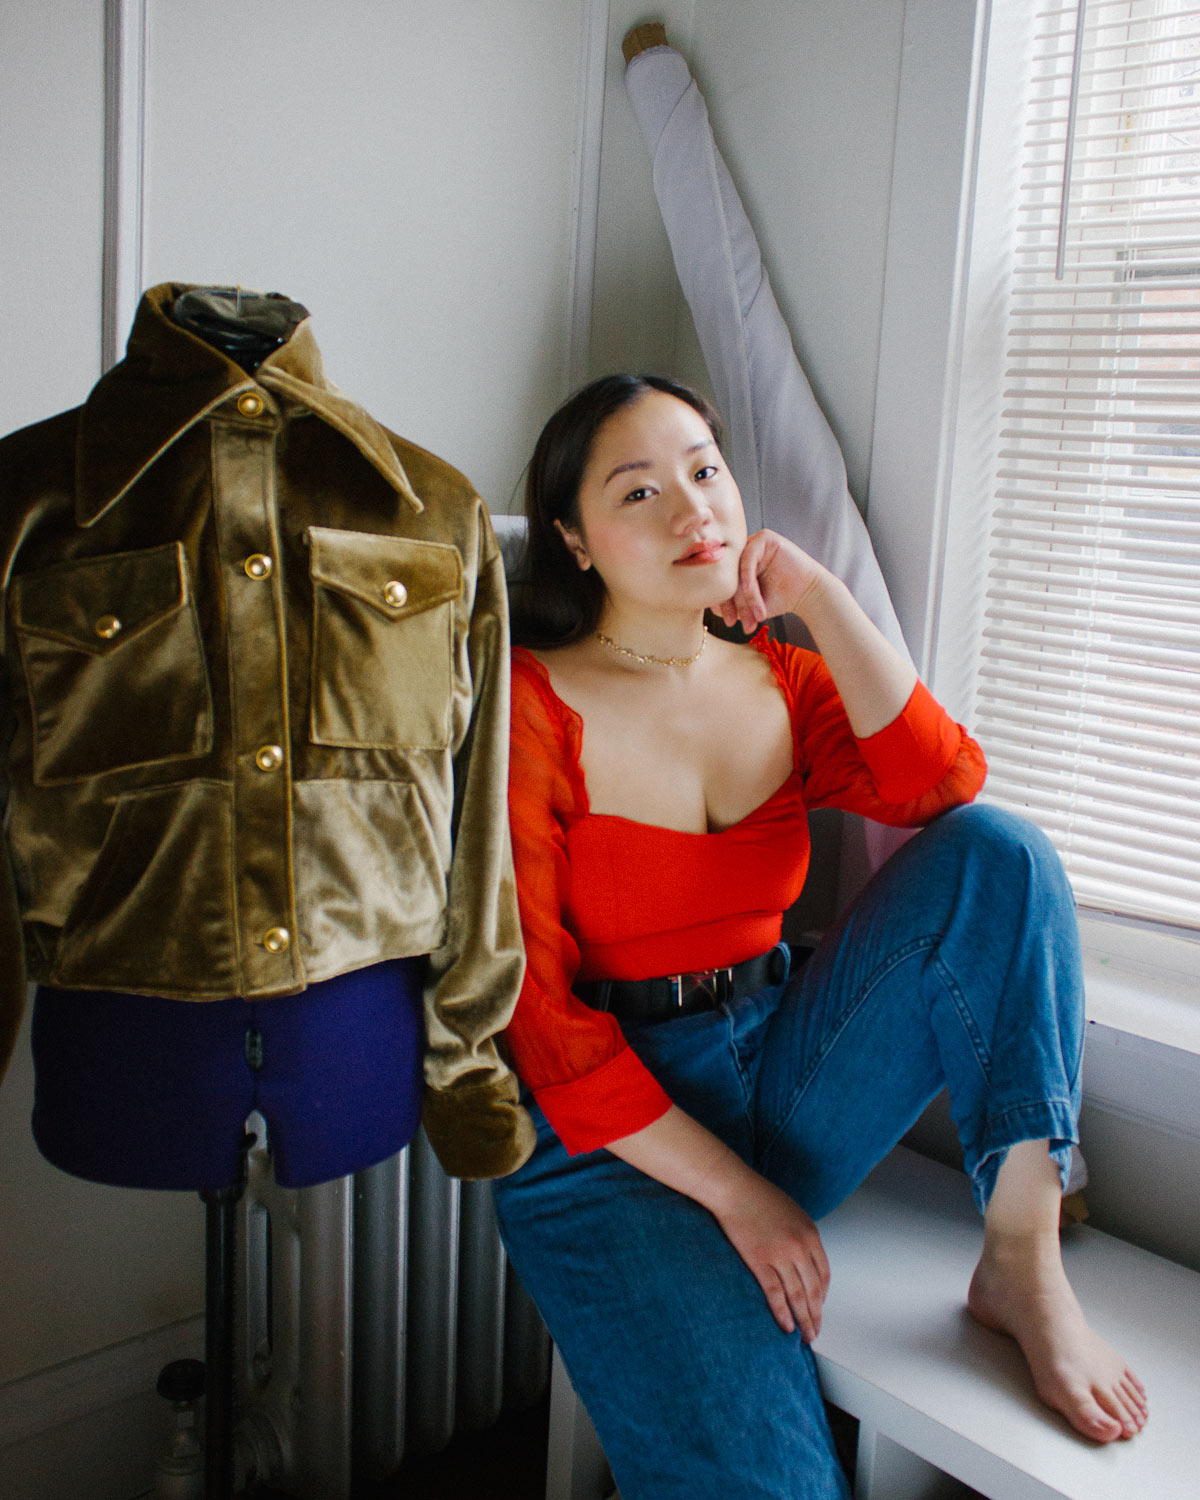 Tiffany Lee, founder and designer behind Lilt Clothing